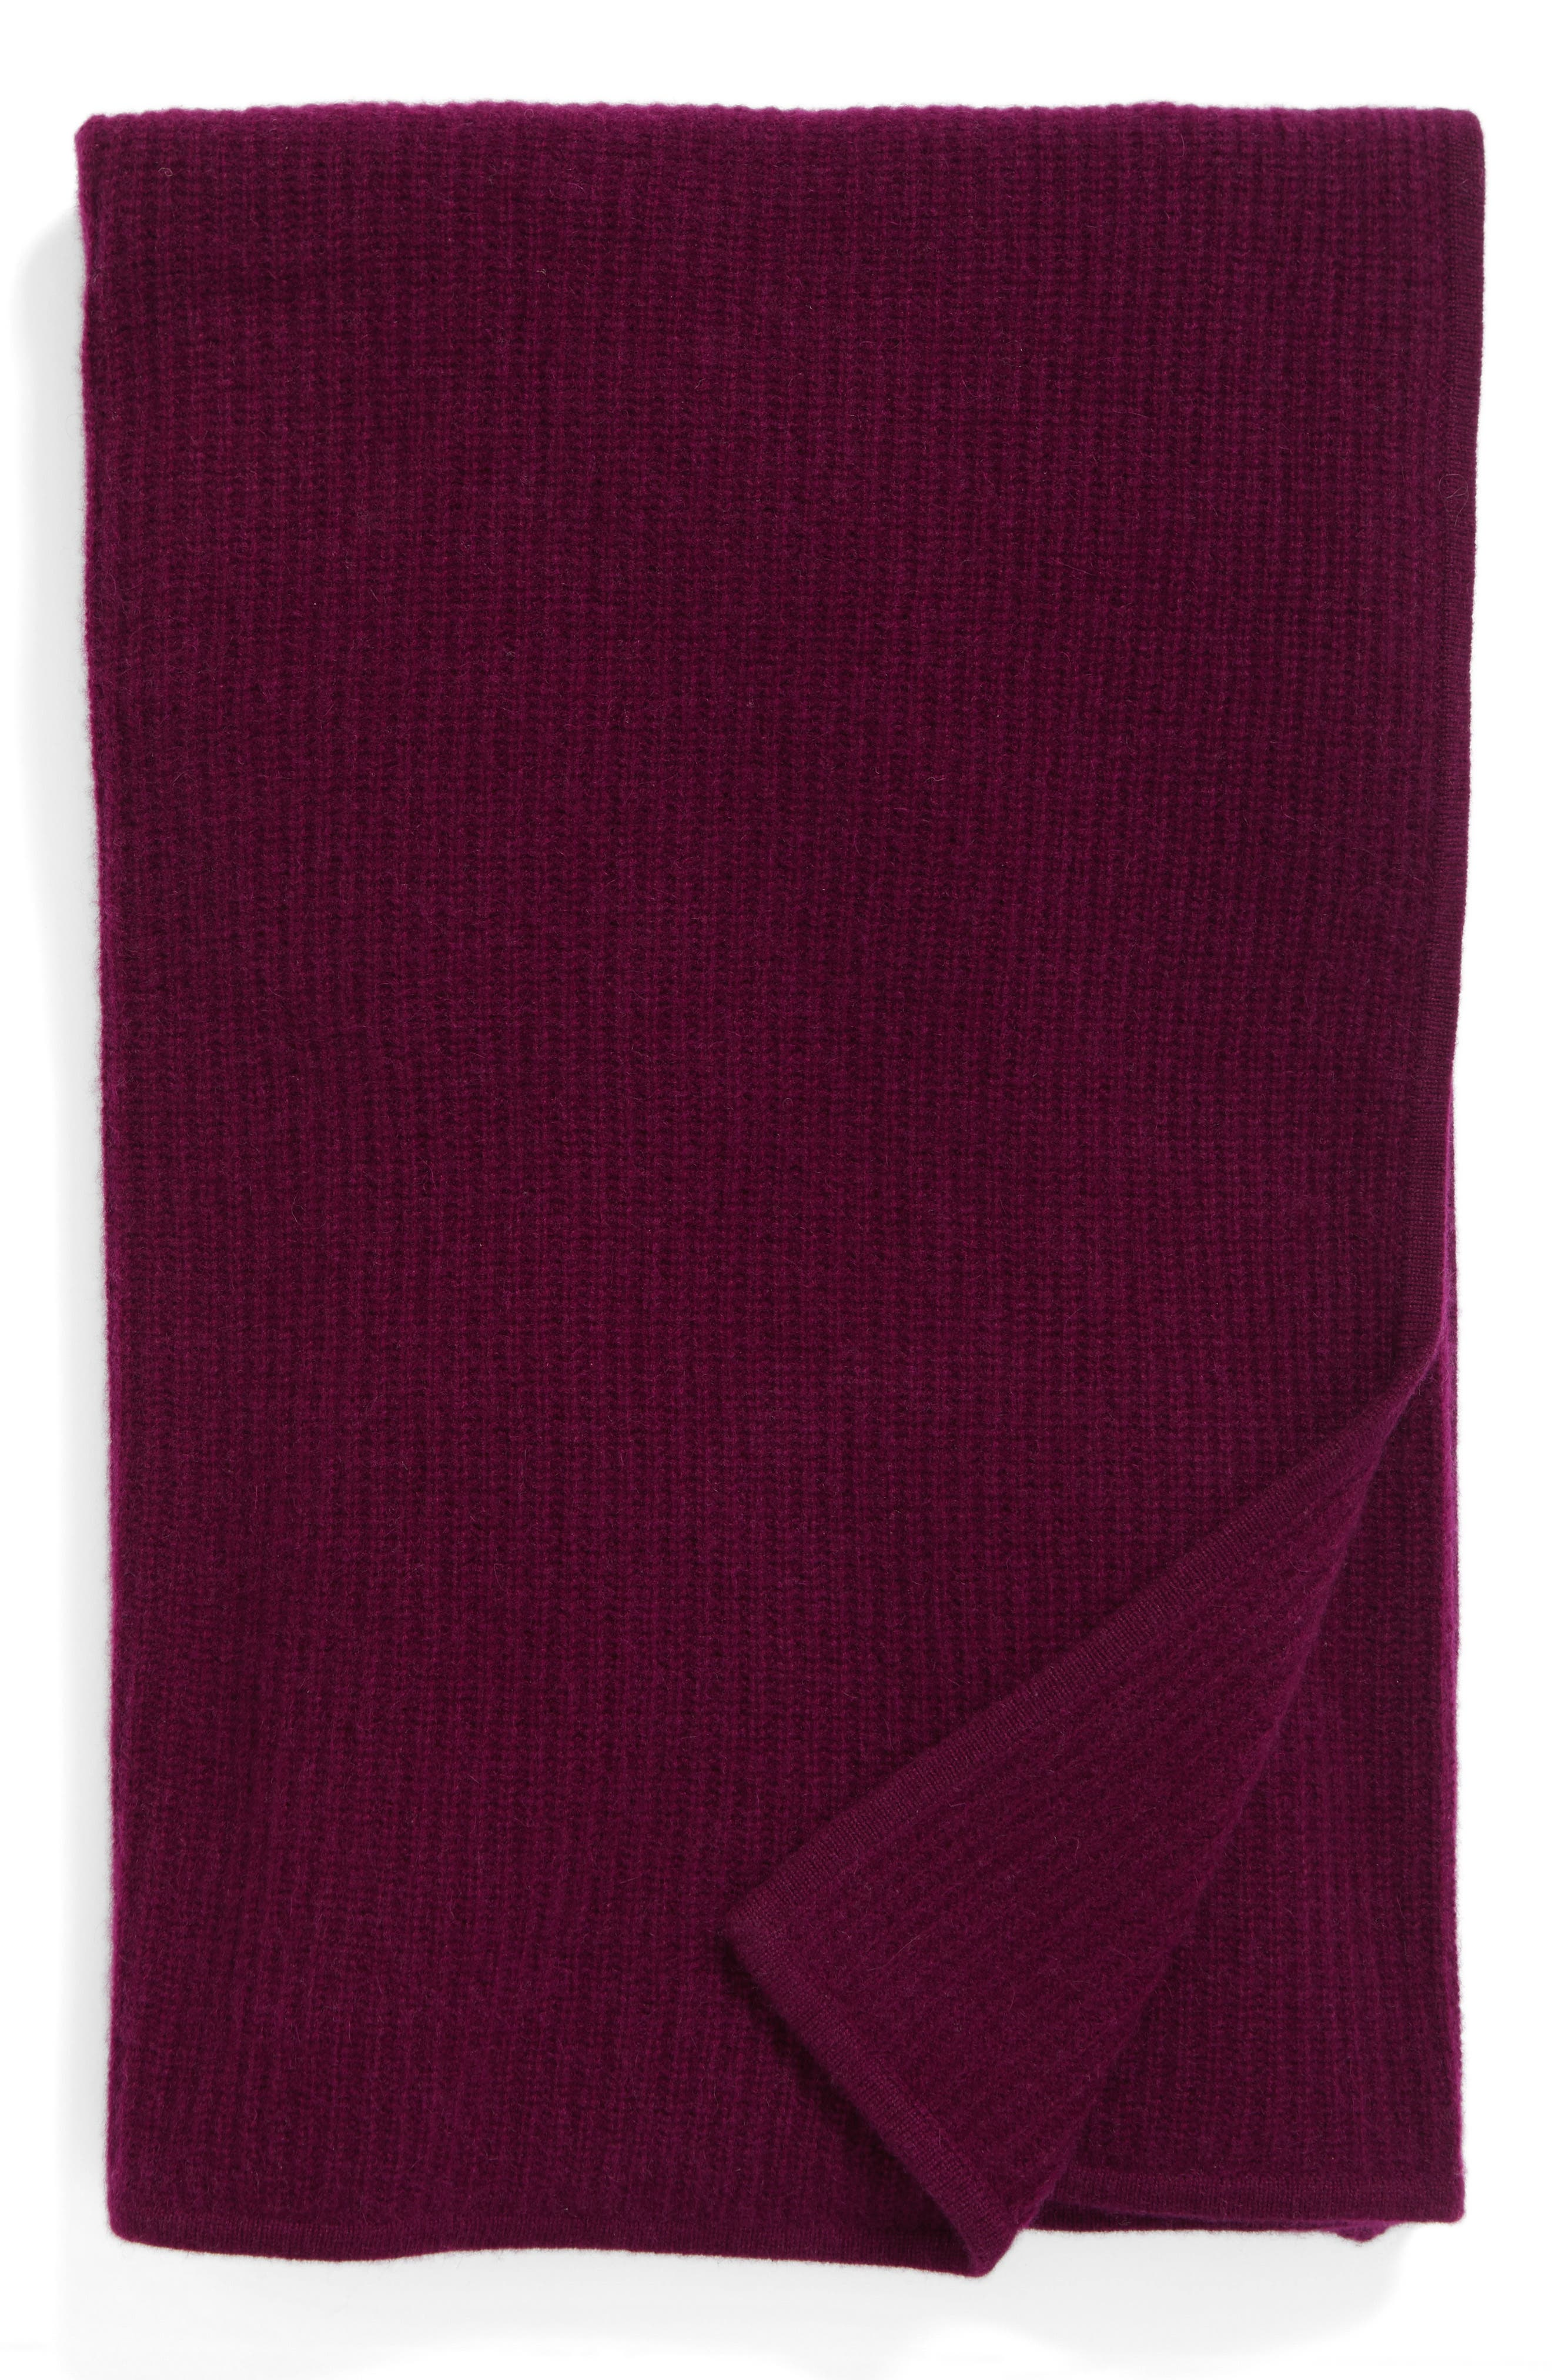 Main Image - Nordstrom at Home Lattice Cashmere Throw Blanket